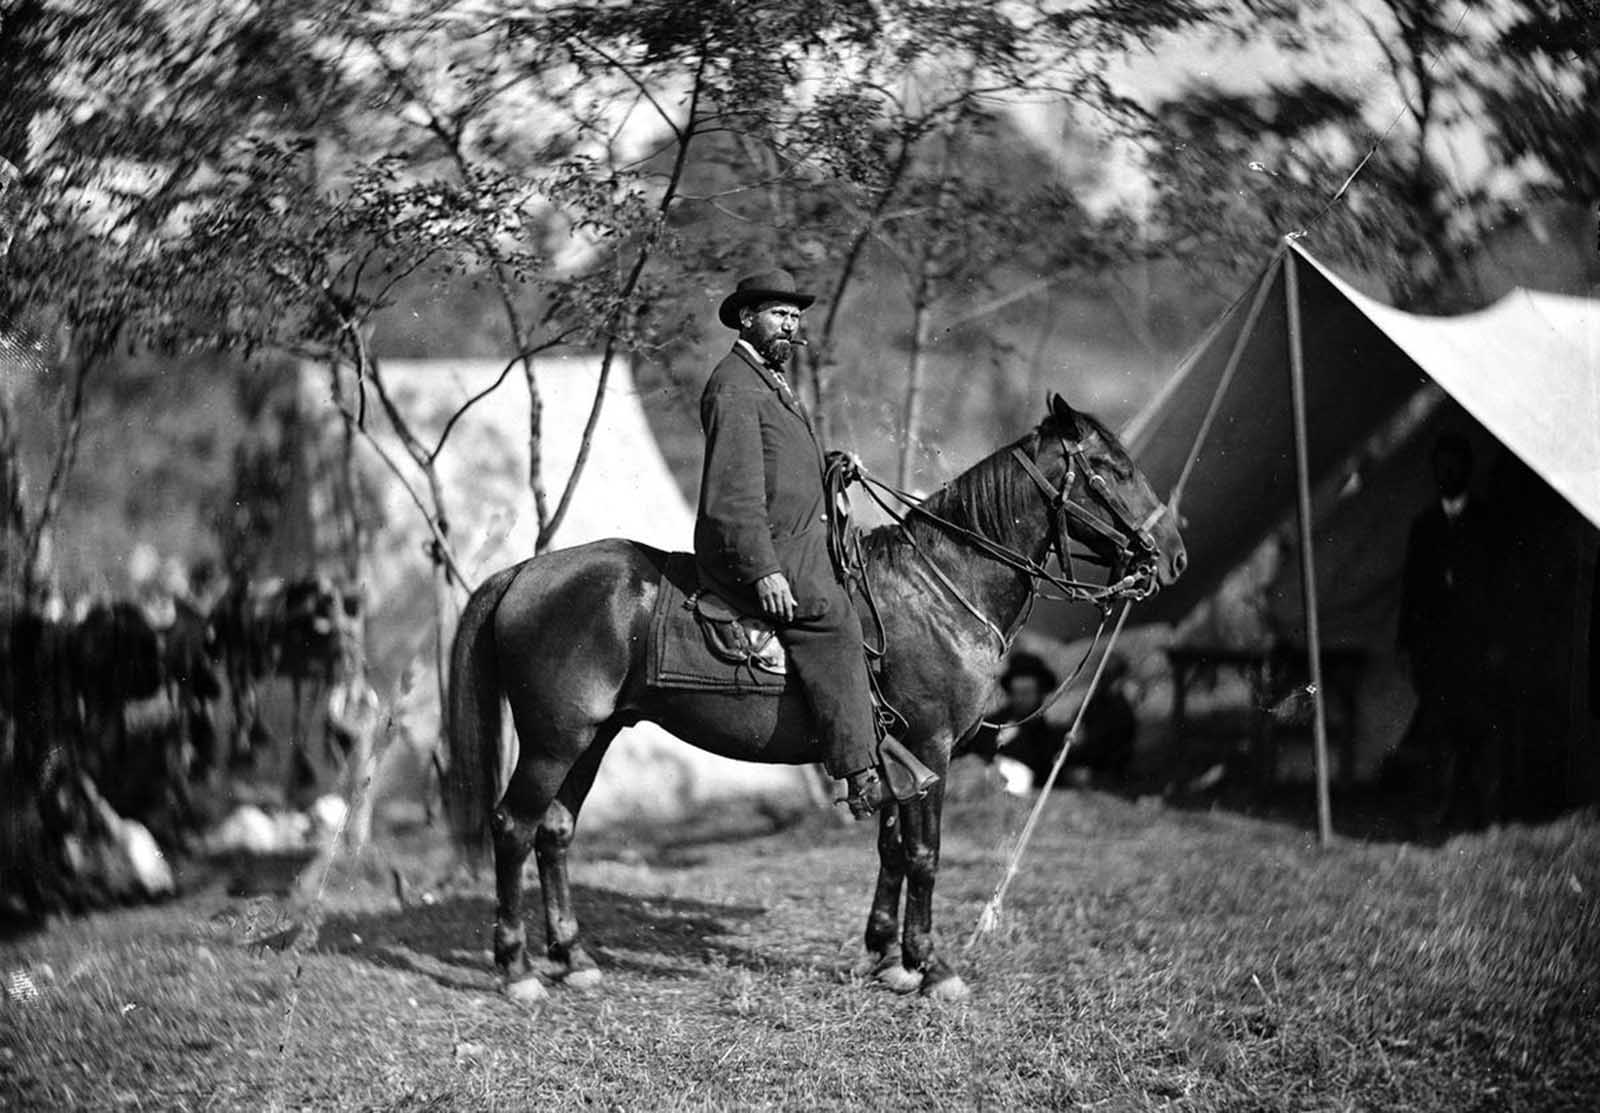 This September 1862 photo provided by the Library of Congress shows Allan Pinkerton on horseback during the Battle of Antietam, near Sharpsburg, Maryland. Before the outbreak of war, he had founded the Pinkerton National Detective Agency. In 1861, he famously foiled an alleged plot to assassinate president-elect Lincoln, and later served as the head of the Union Intelligence Service -- the forerunner of the U.S. Secret Service.